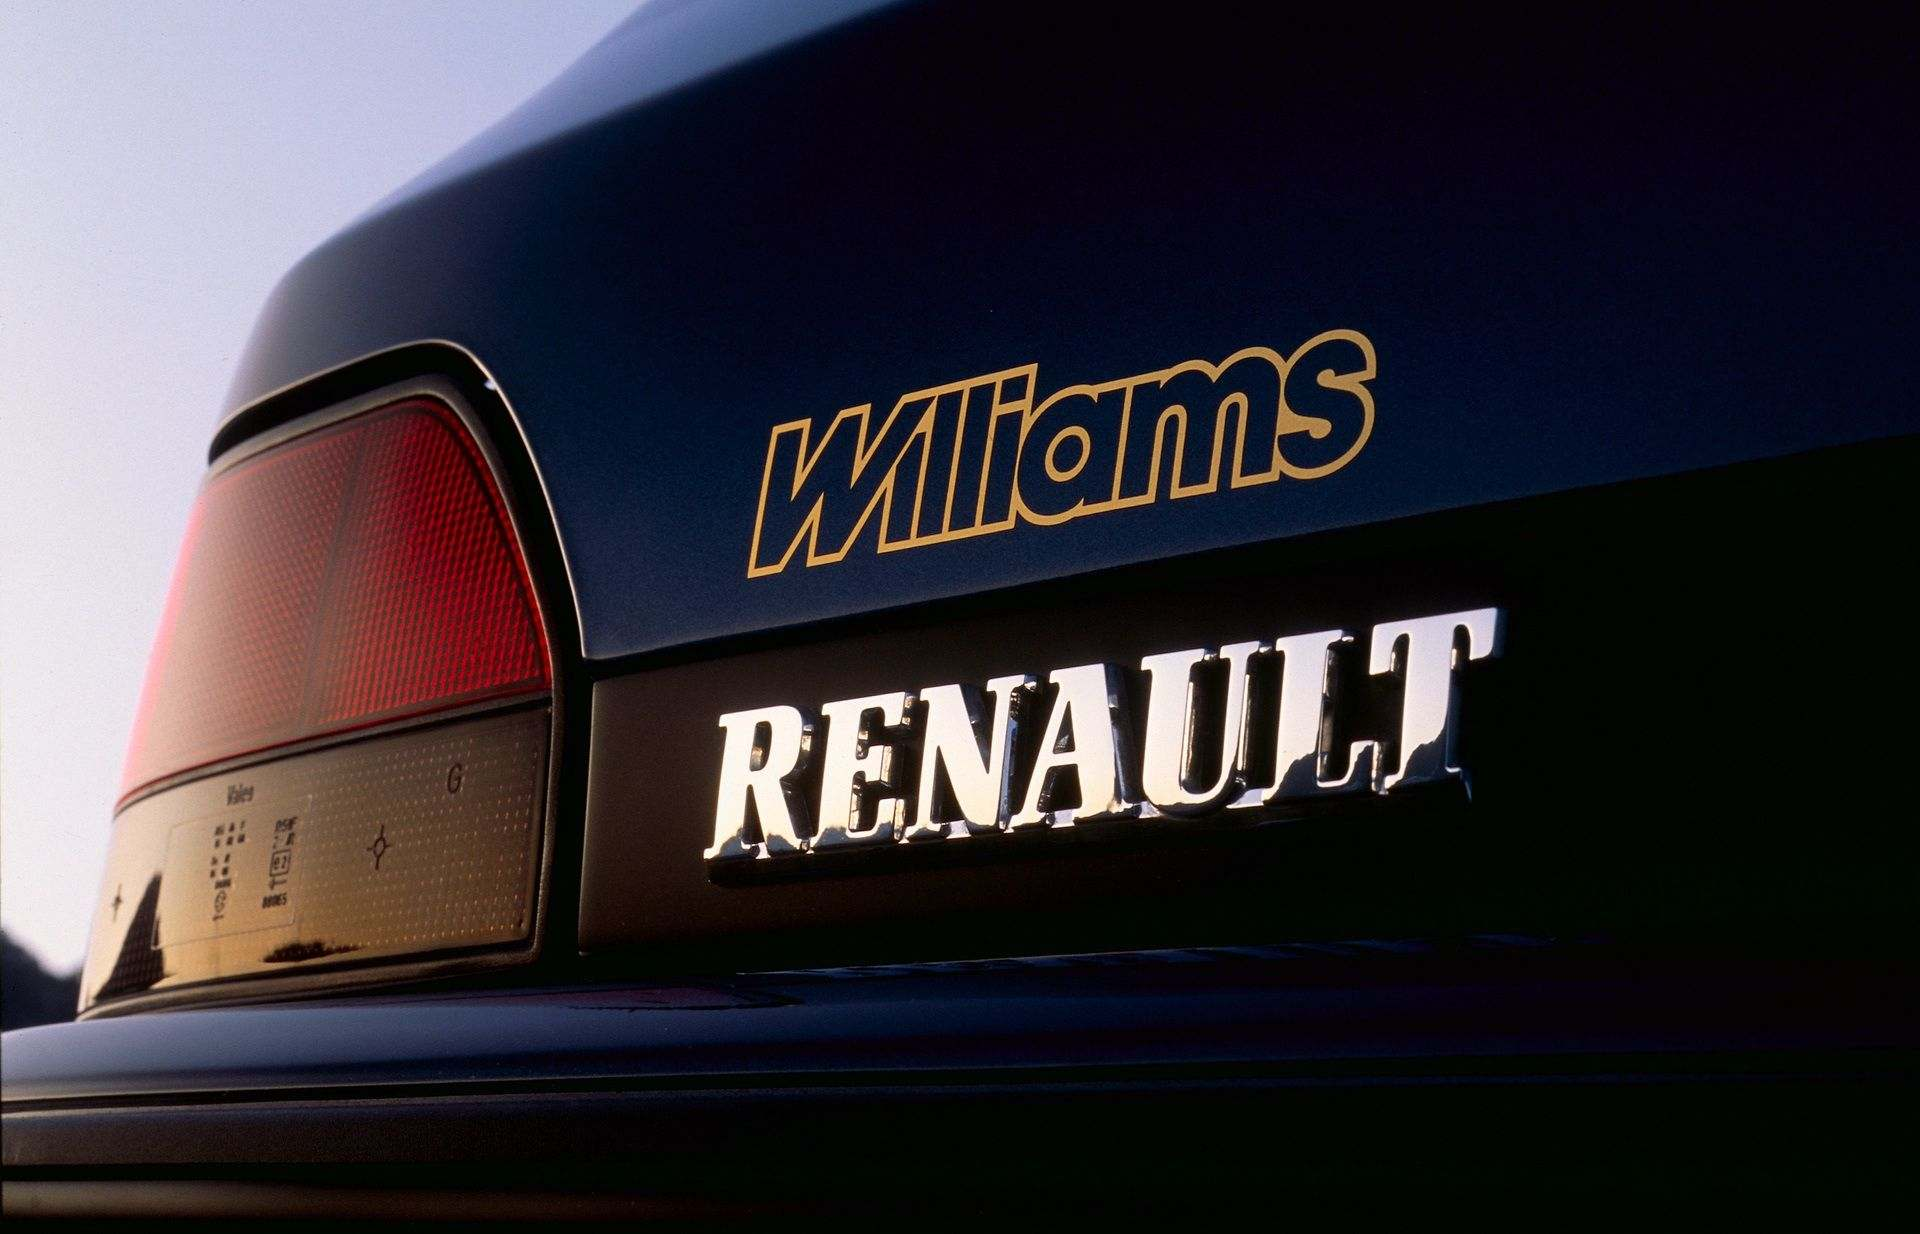 2020-30-years-of-Renault-CLIO-Renault-CLIO-I-1990-1999-12